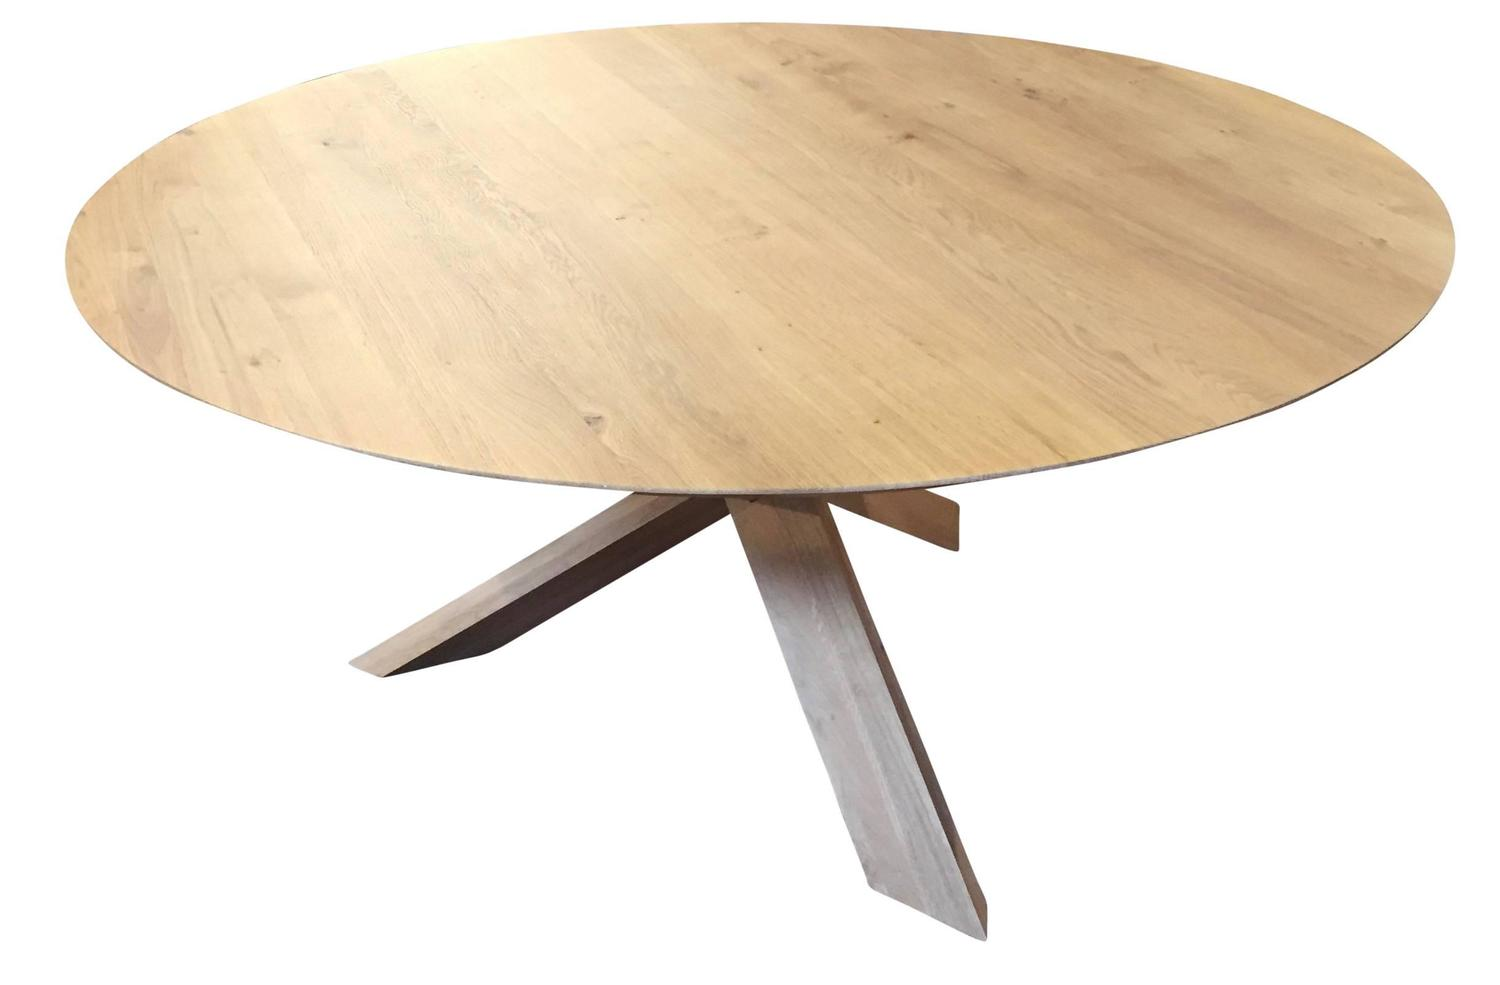 Modern large white oak round dining table haskell design for Large round modern dining table